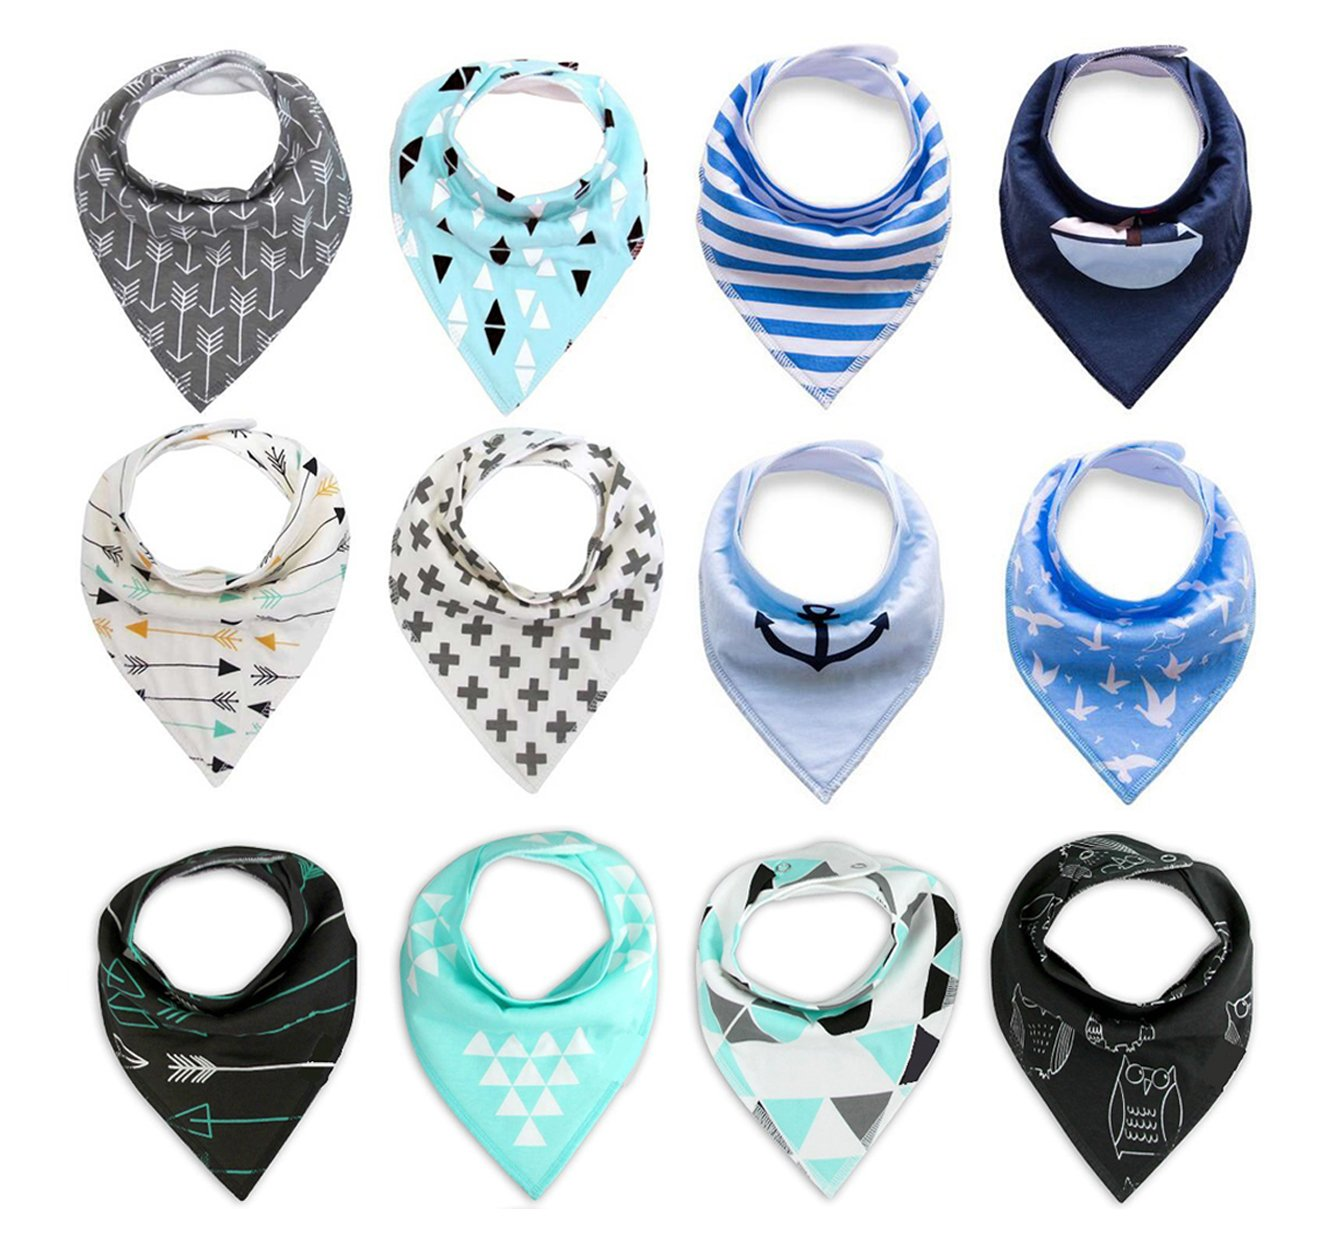 Super Absorbent Cotton Adjustable Baby Bandana Drool Bibs with 2 Snaps Unisex Baby Gift 12 Piece BabyPrice